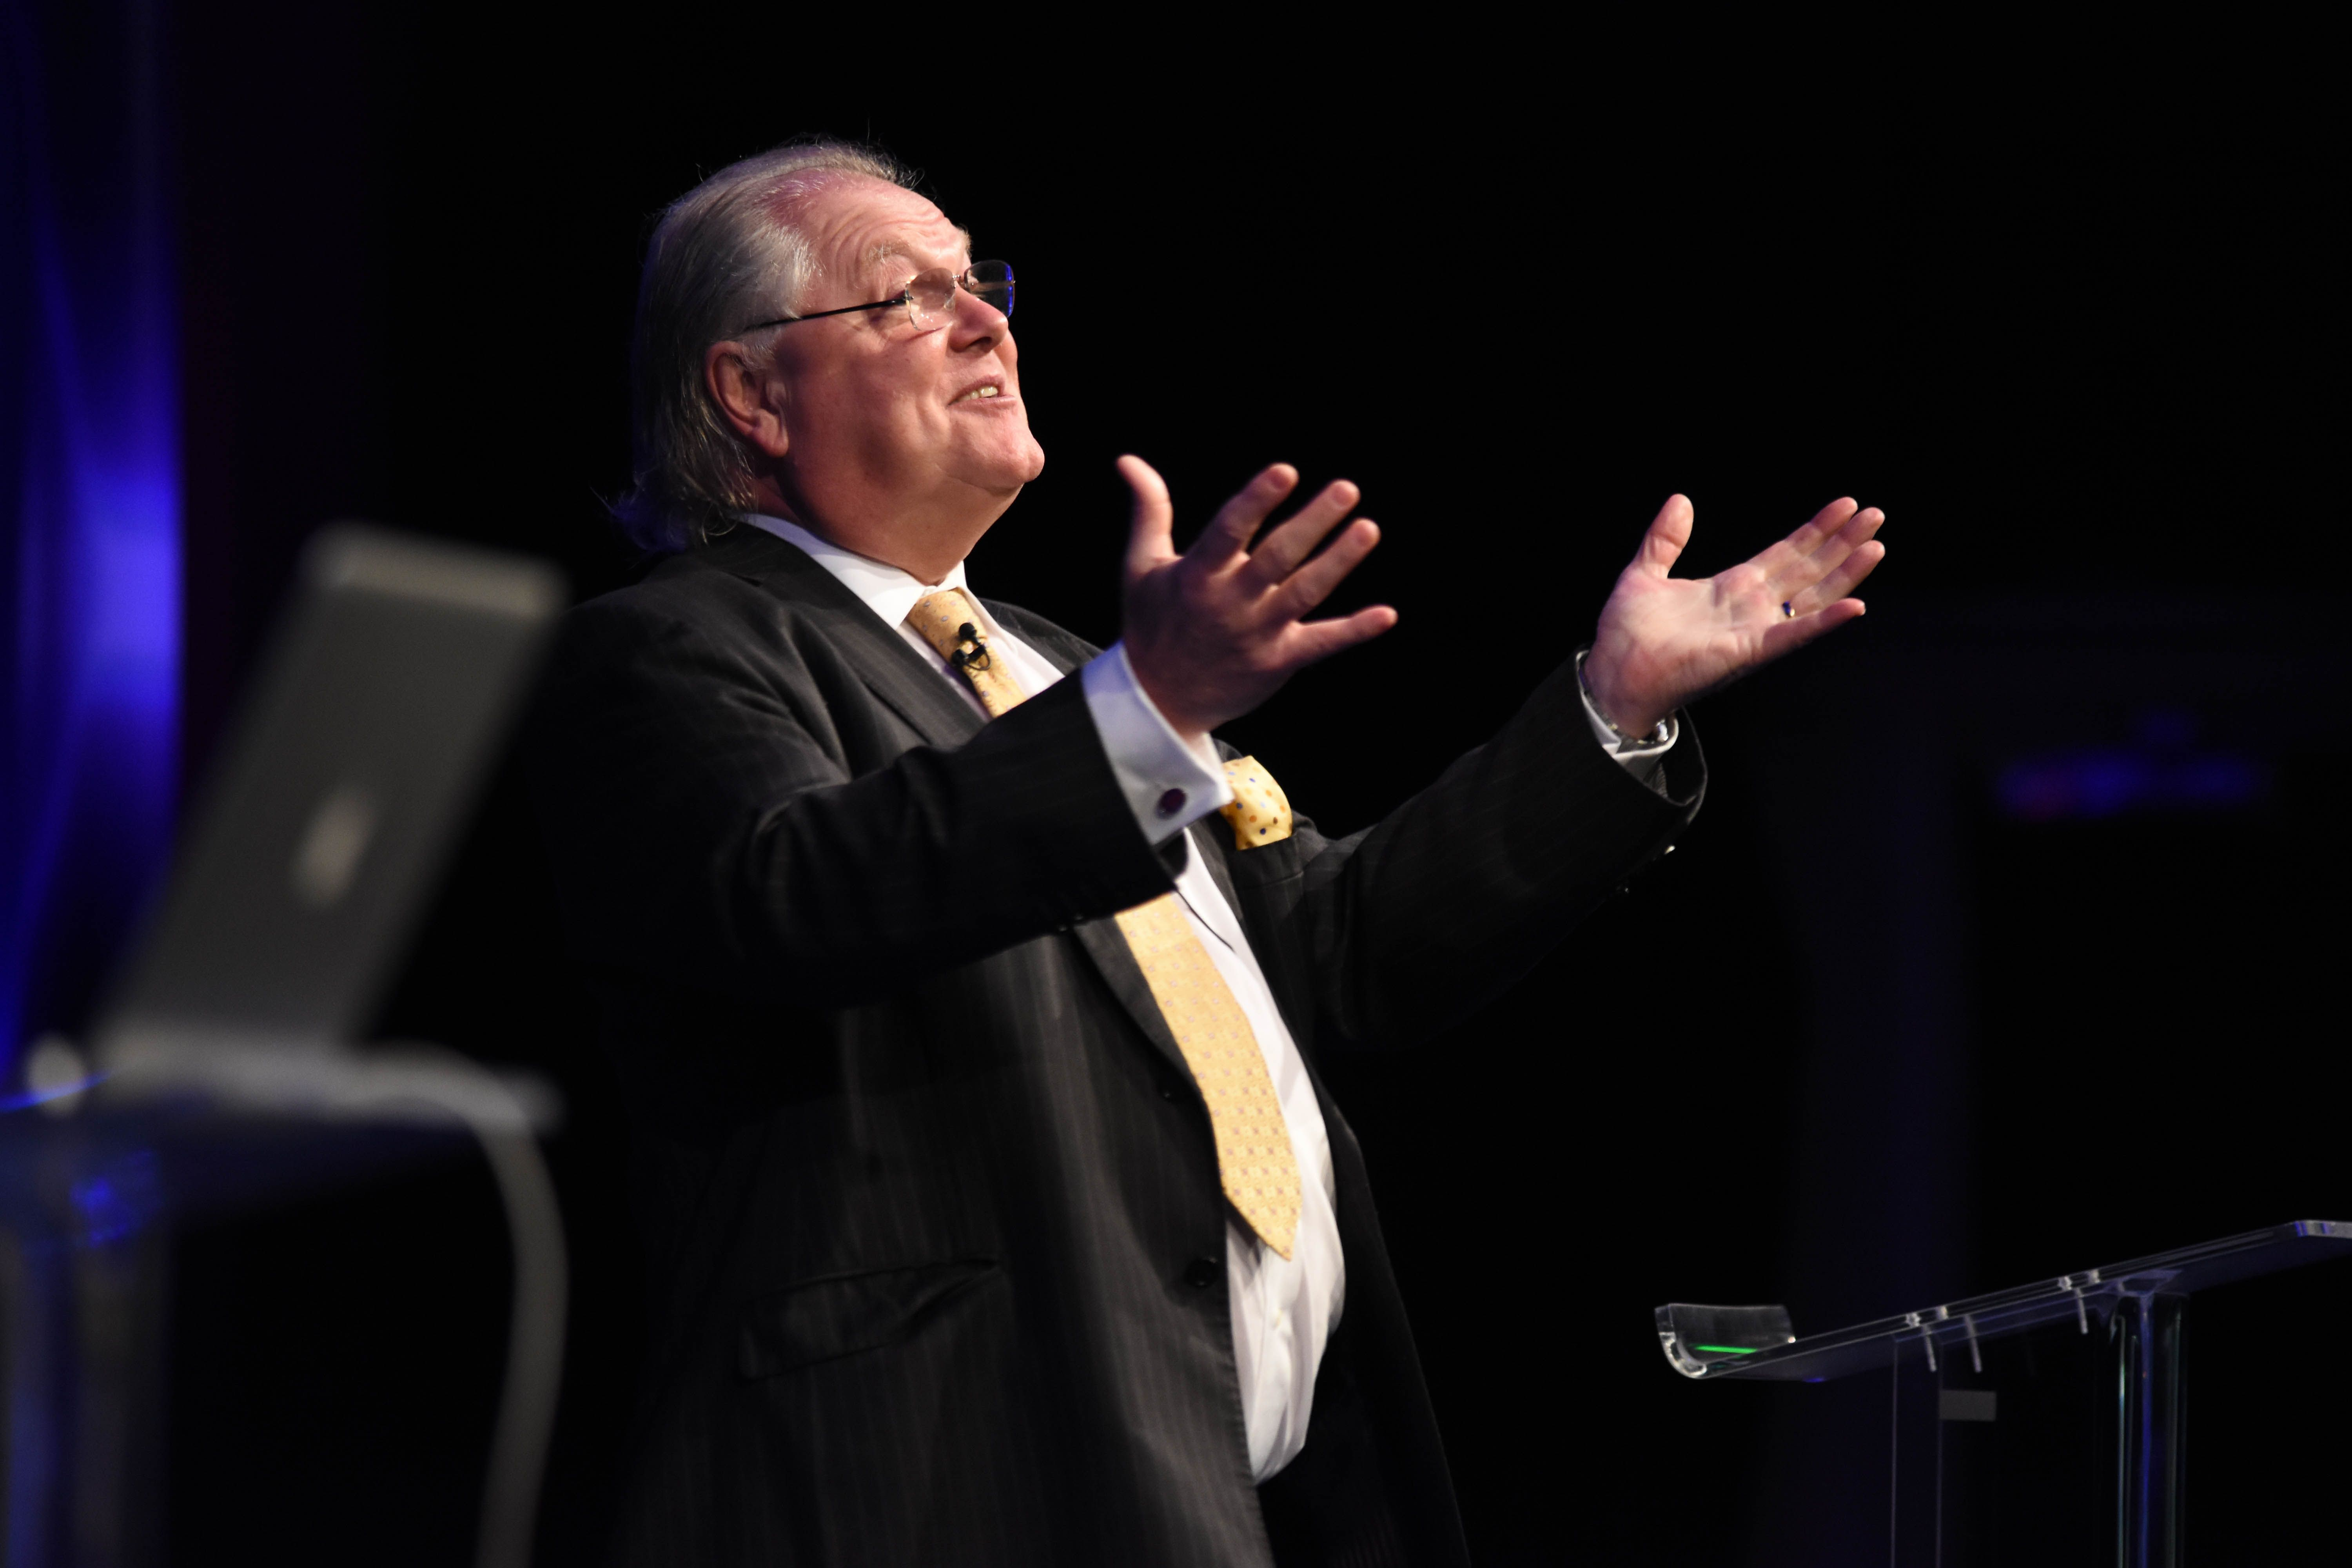 Keynote speaker, Lord Digby Jones at the CMJ Business Conference 2015